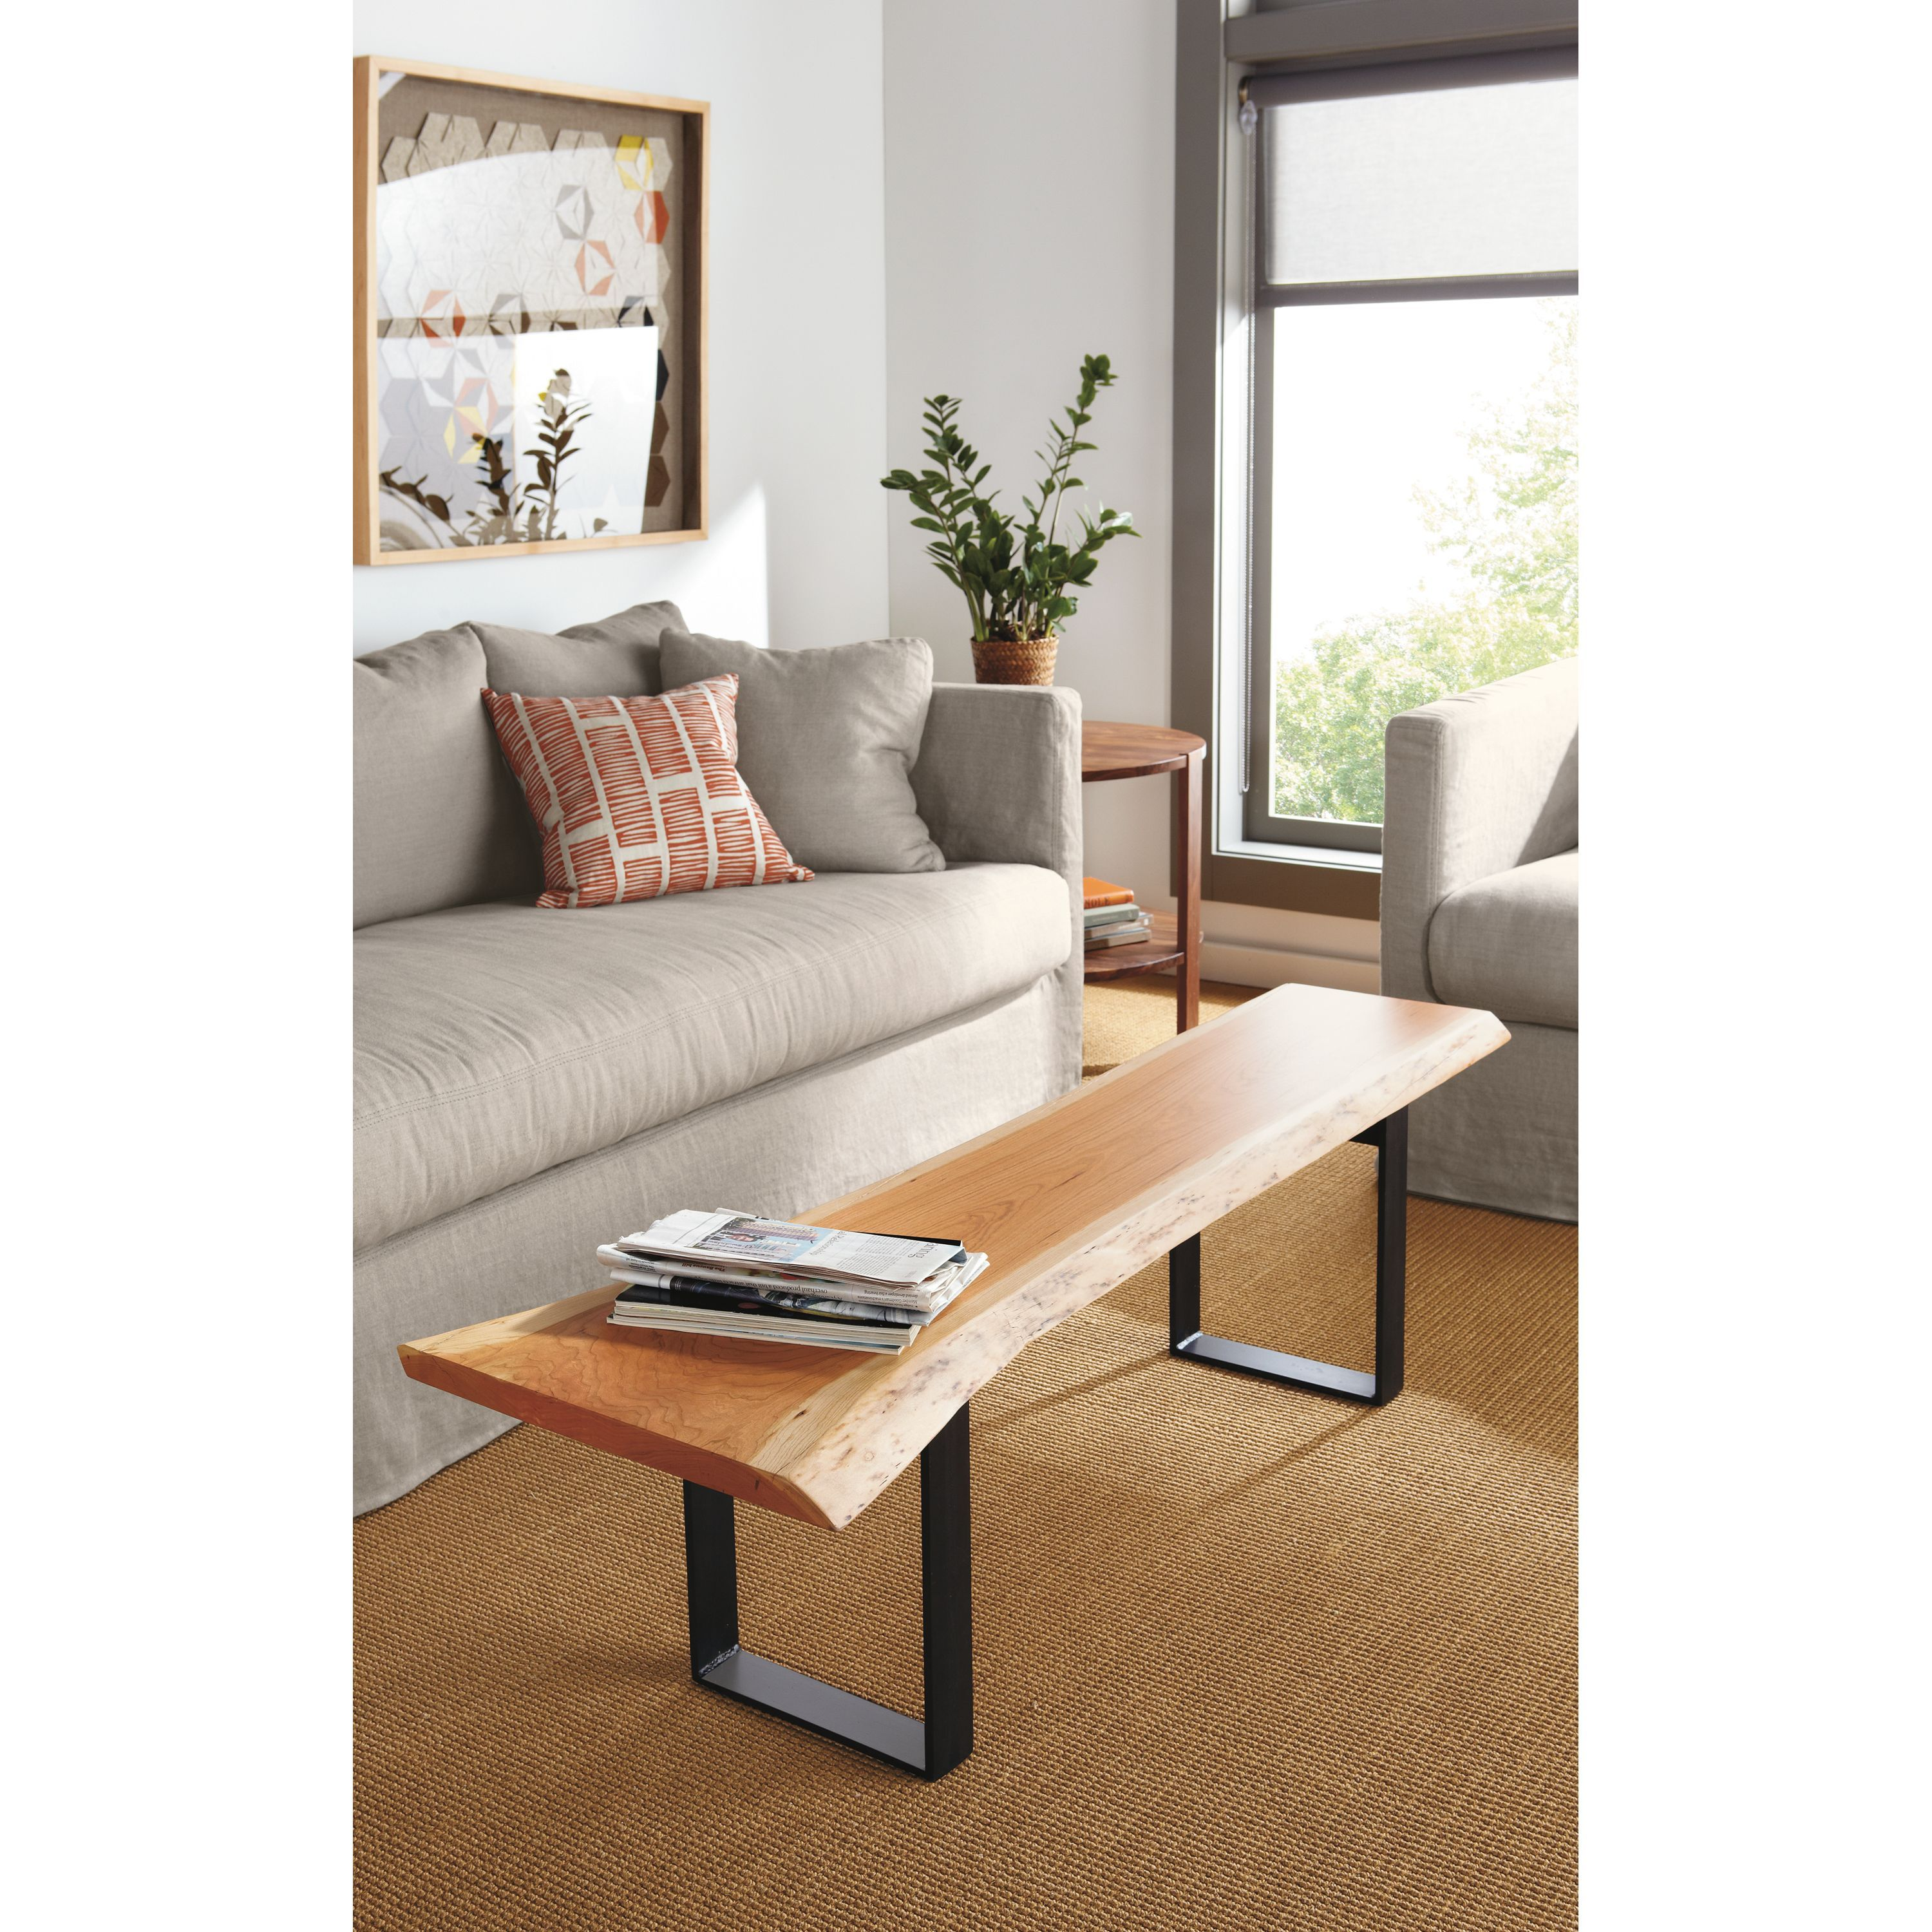 Chilton Bench in Cherry - Modern Benches, Stools & Ottomans - Modern Living Room Furniture - Room & Board